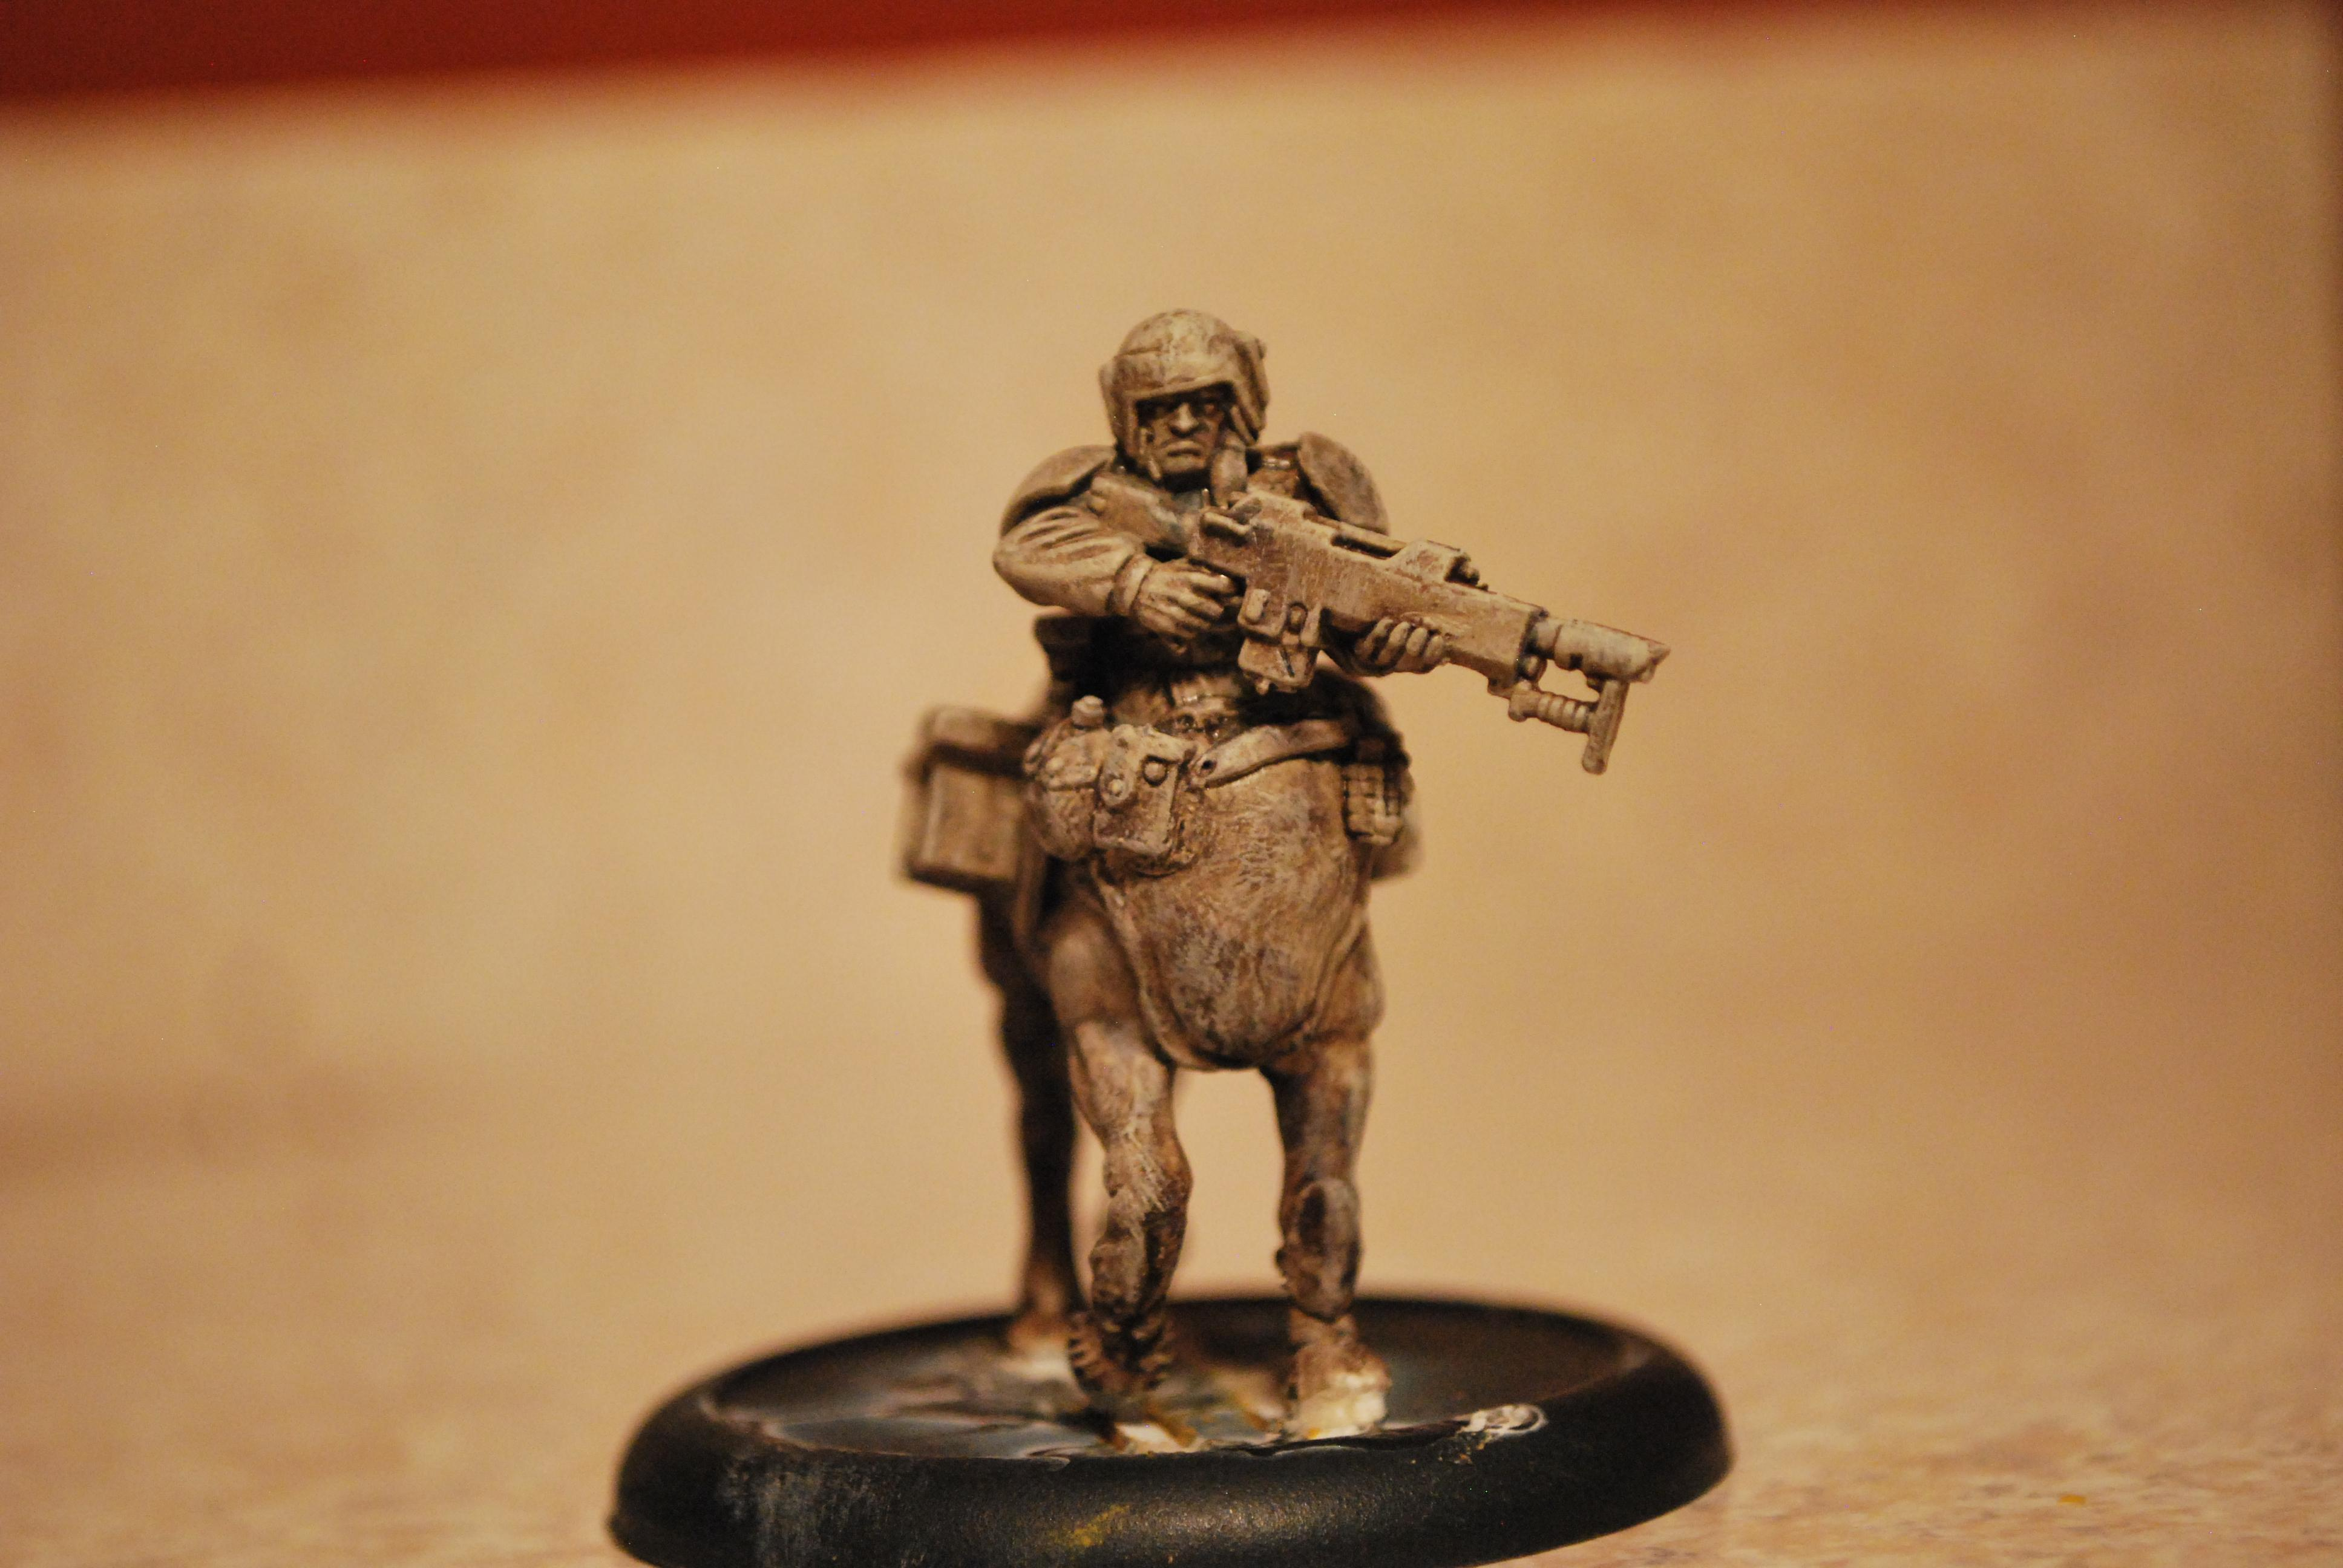 Centaur, Conversion, Custo, Fallout, High Elf Horse, Hybrid, Imperial Guard, Minis, Mutant, Post Apoc, Post Apocalyptic, Pro-create, Prototype, Sculpting, This Is Not A Test